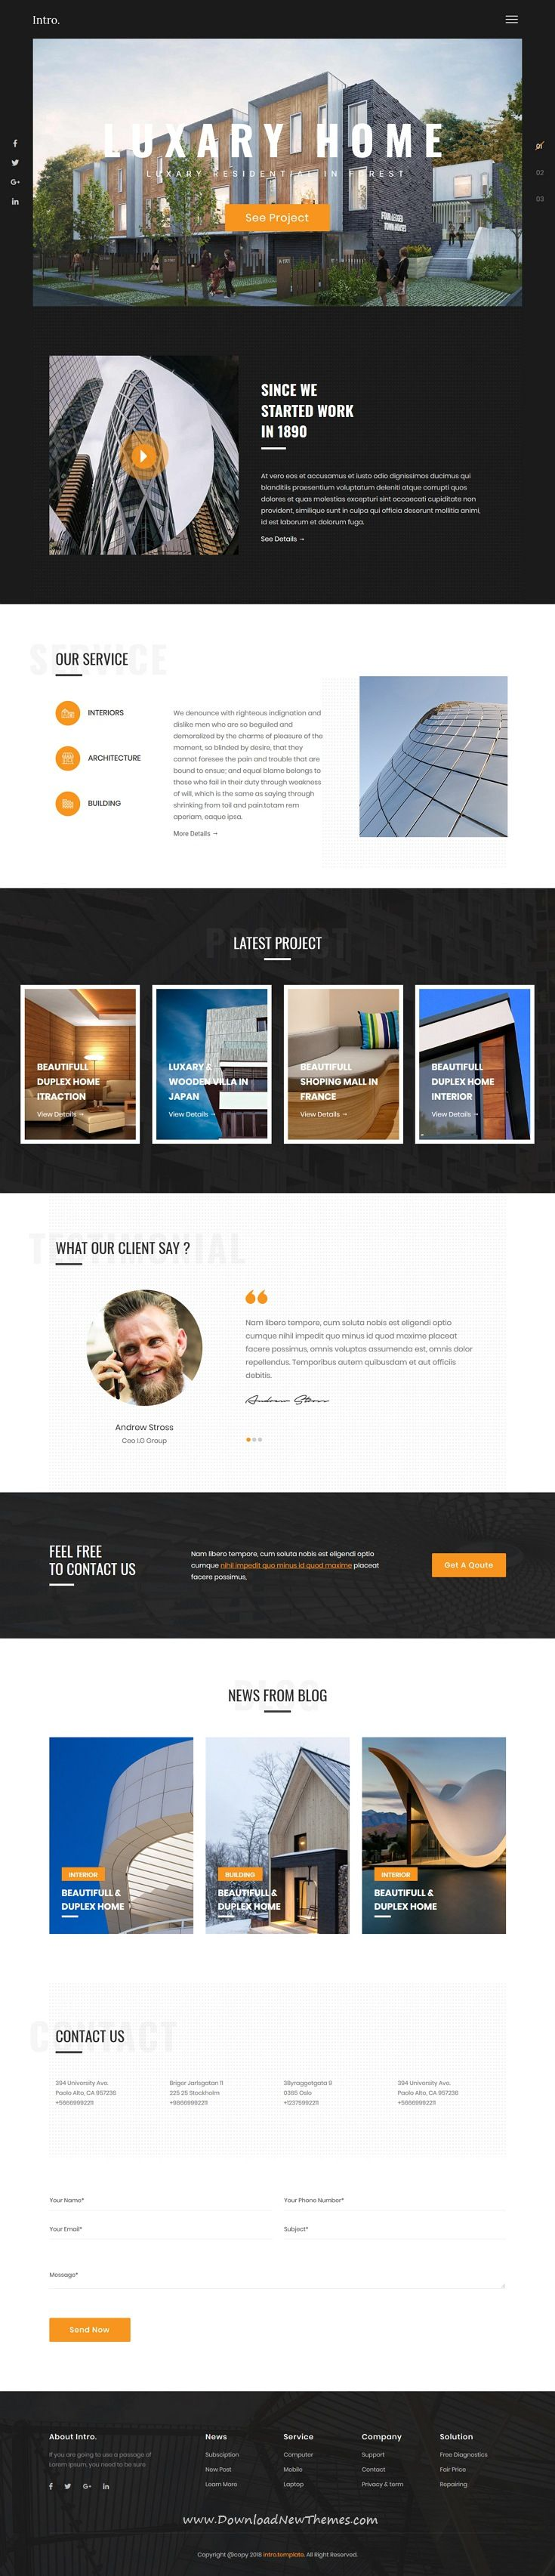 Intro is a clean and modern design 7in1 responsive